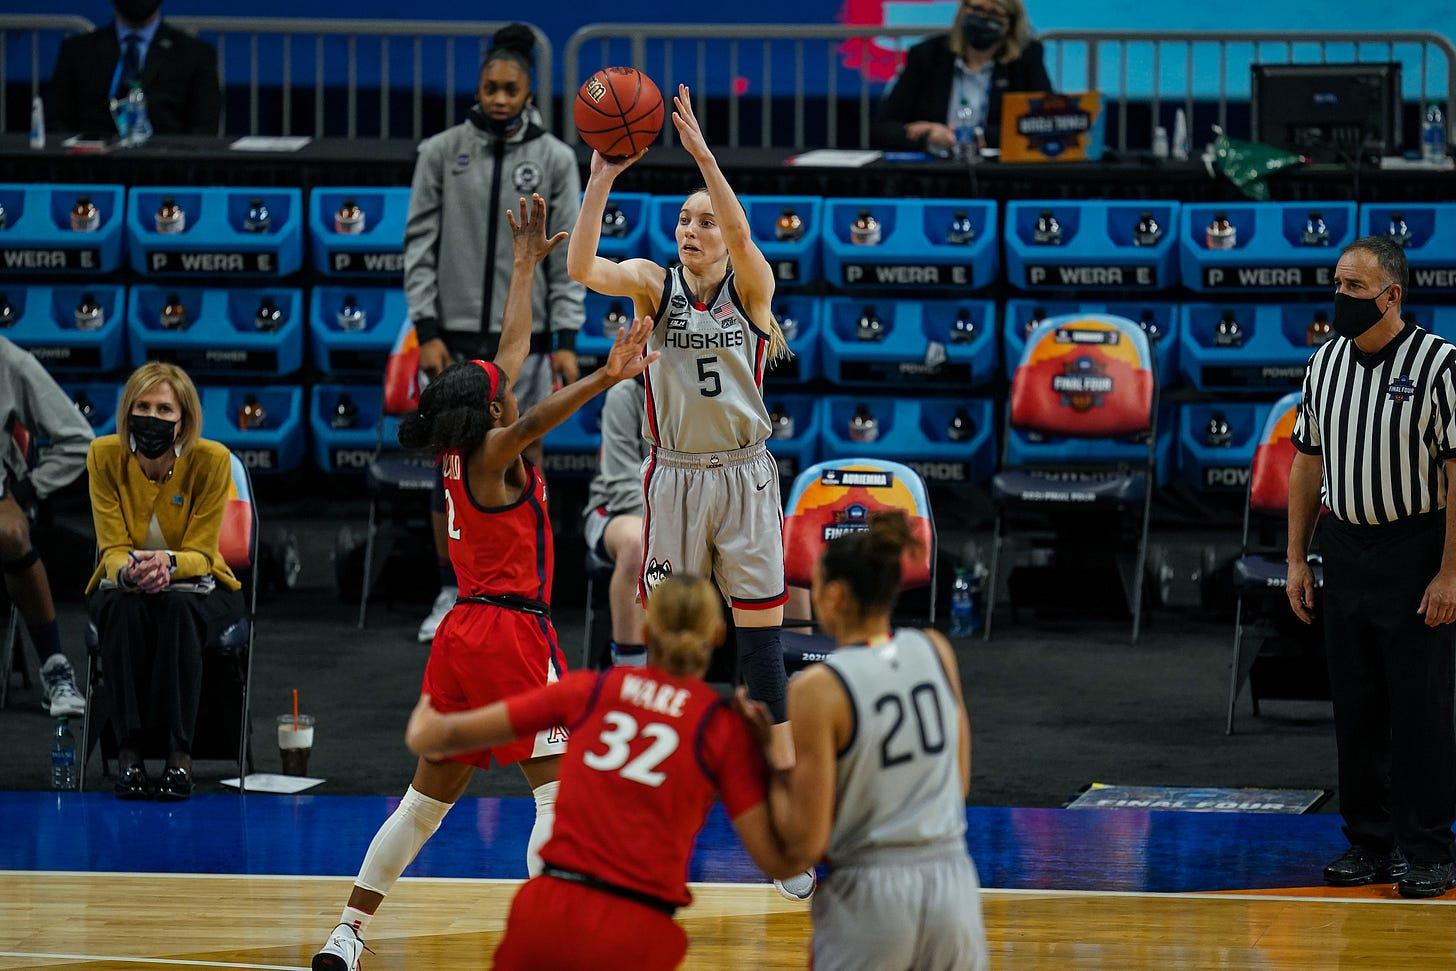 Paige Bueckers rises up for a shot during UConn's Final Four contest against Arizona. (Photo courtesy of Uconn women's basketball via Twitter)